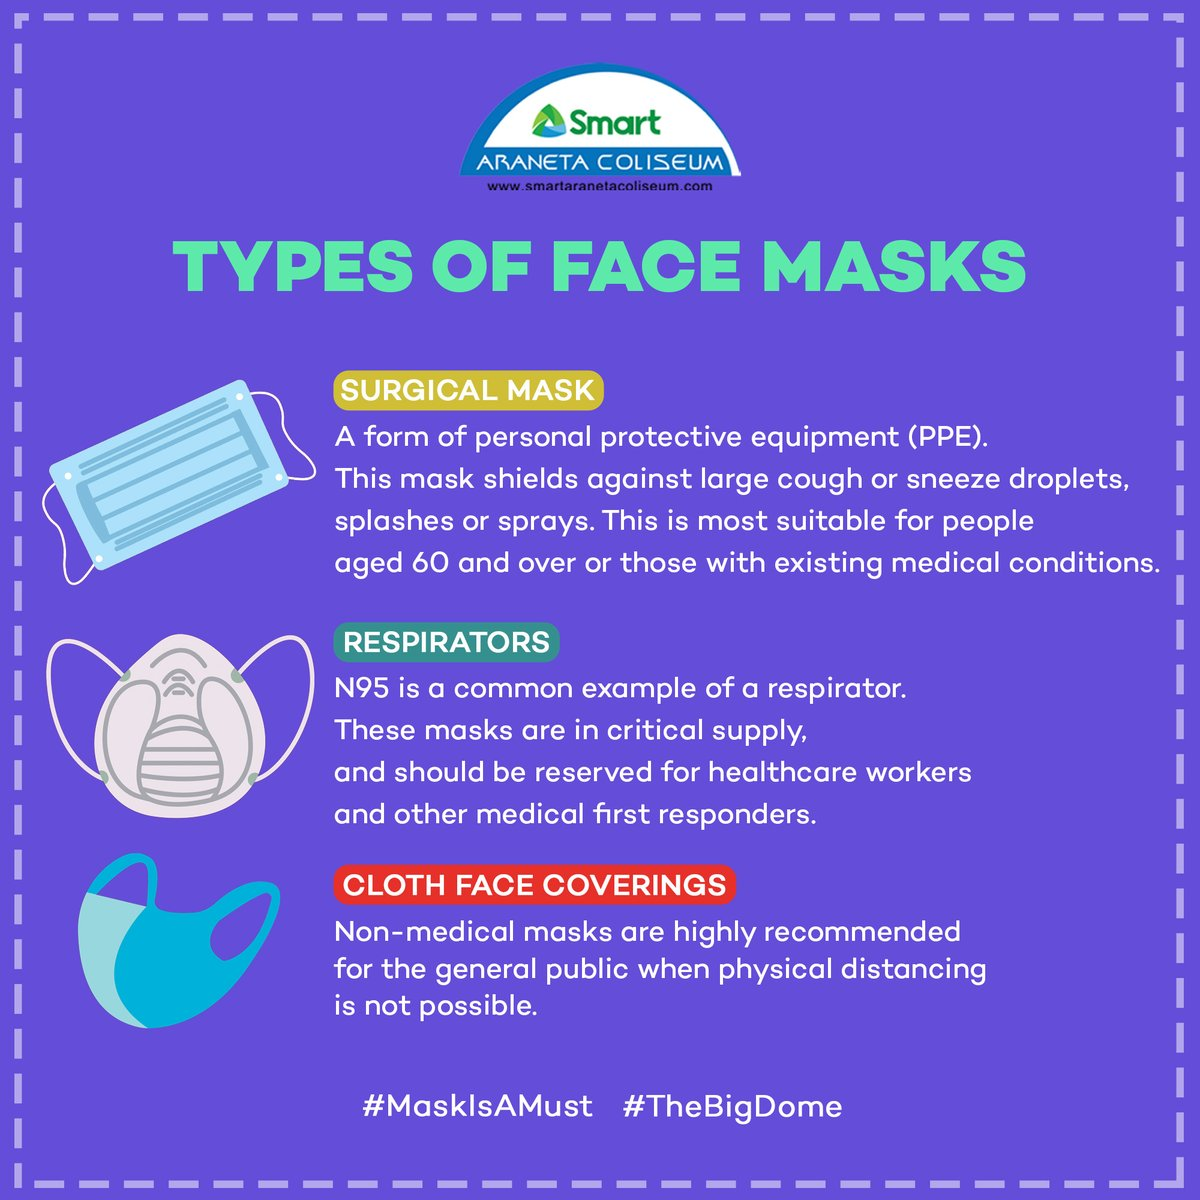 It's another manic Monday! In case you're on your way out today, make sure to bring your masks and an extra mask with you! Stay safe and healthy 💙✨  #StaySafe #MaskIsAMust #TheBigDome